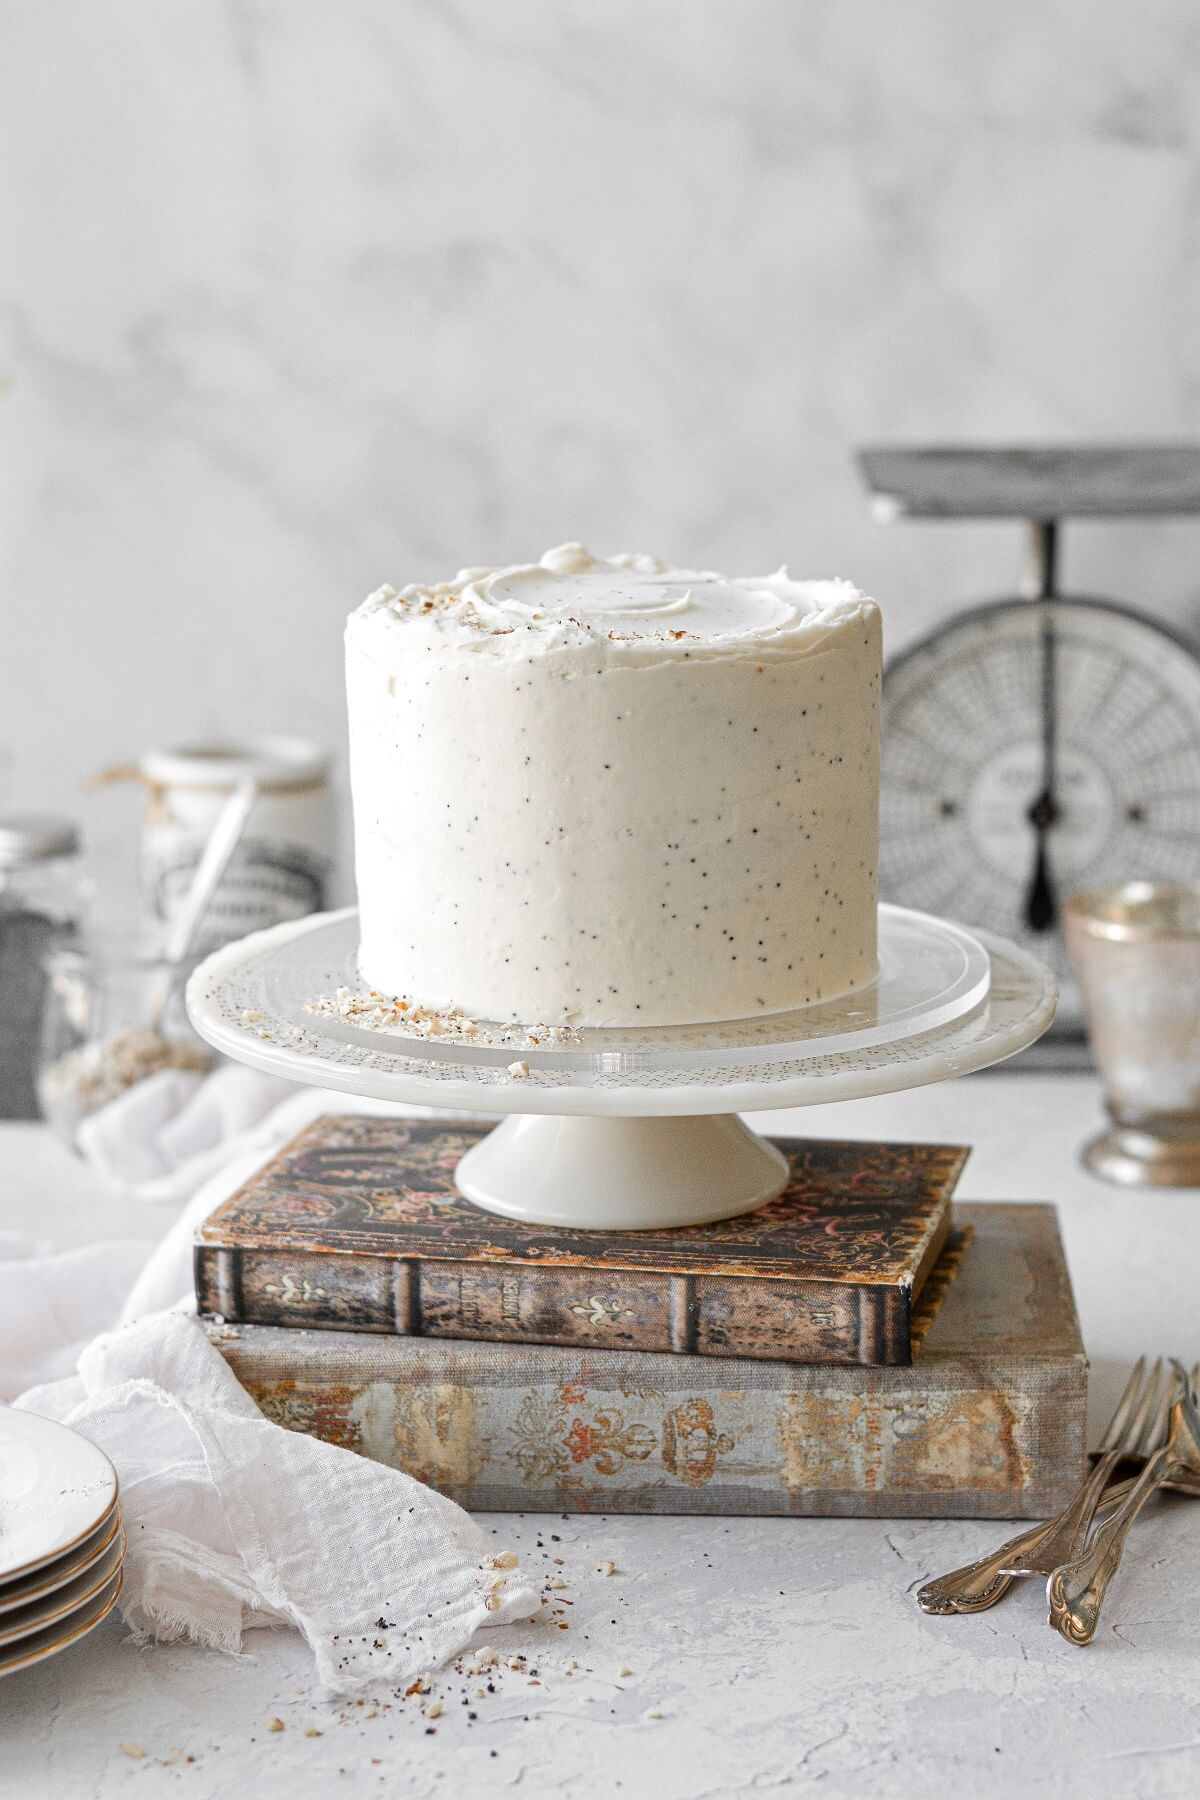 Almond poppyseed cake on a stack of vintage books.